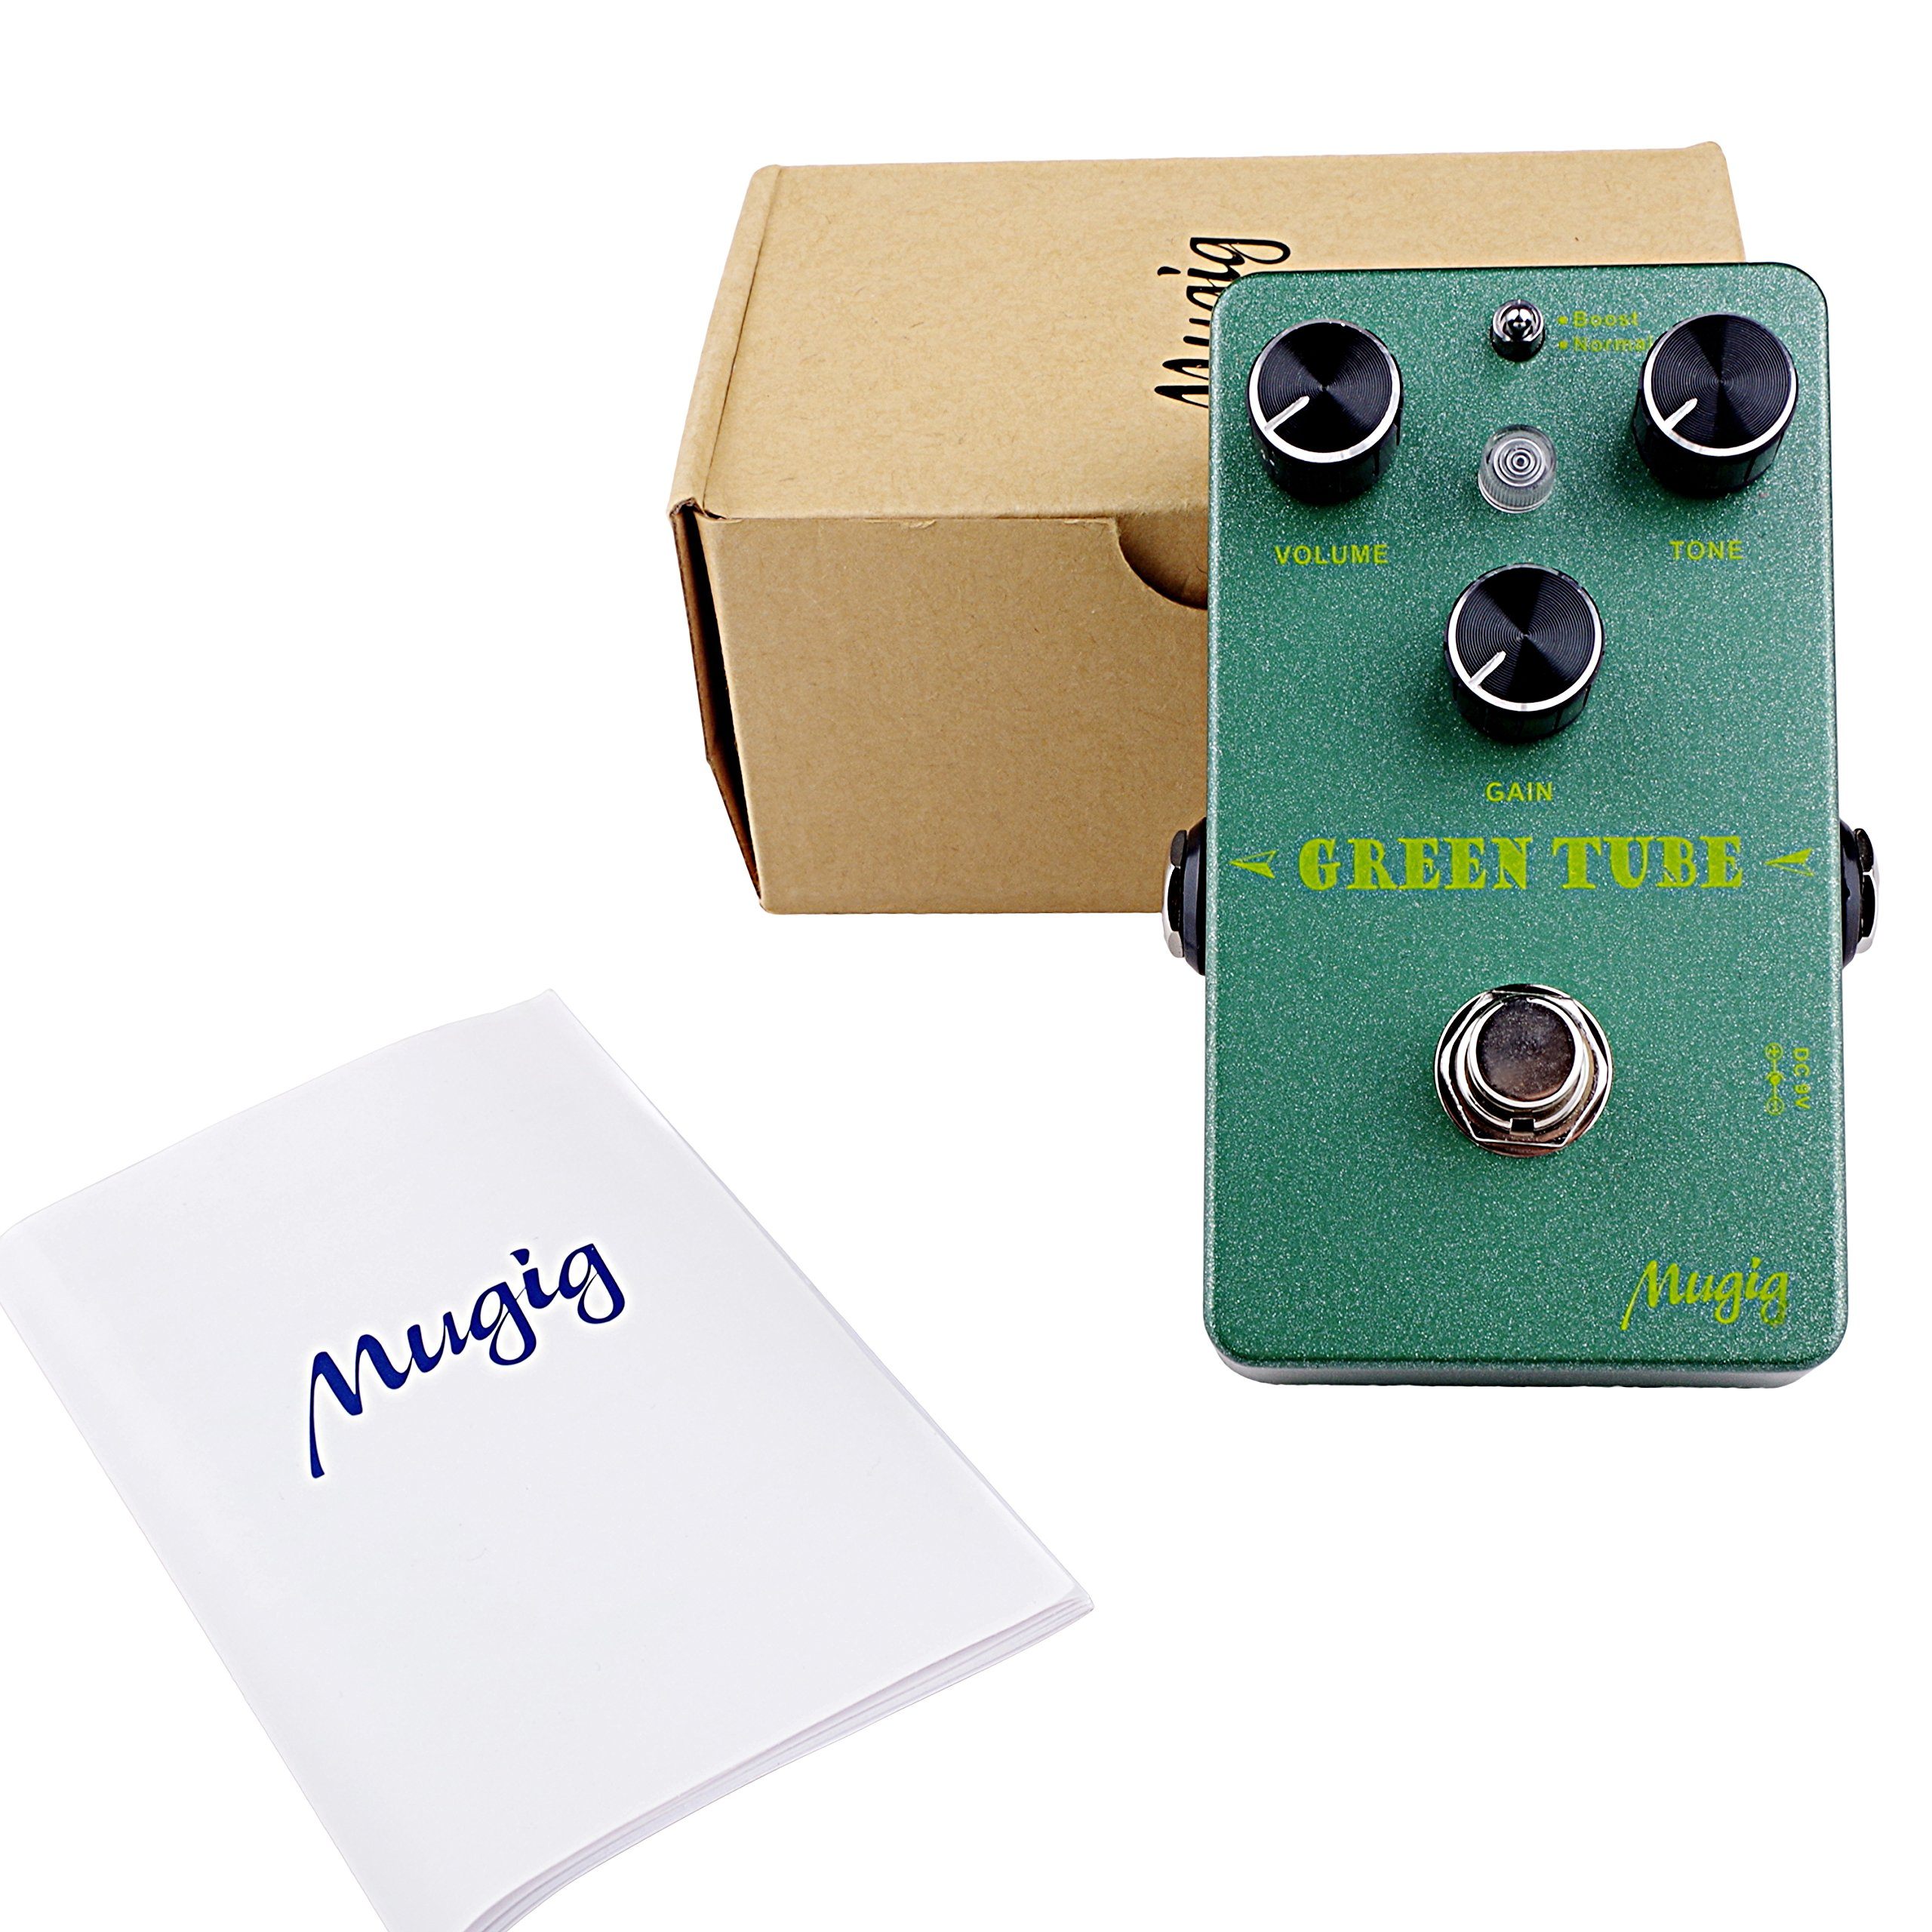 Mugig Guitar Effects Pedal, Overdrive Effect Pedal Two Modes, Boost /Normal with True Bypass